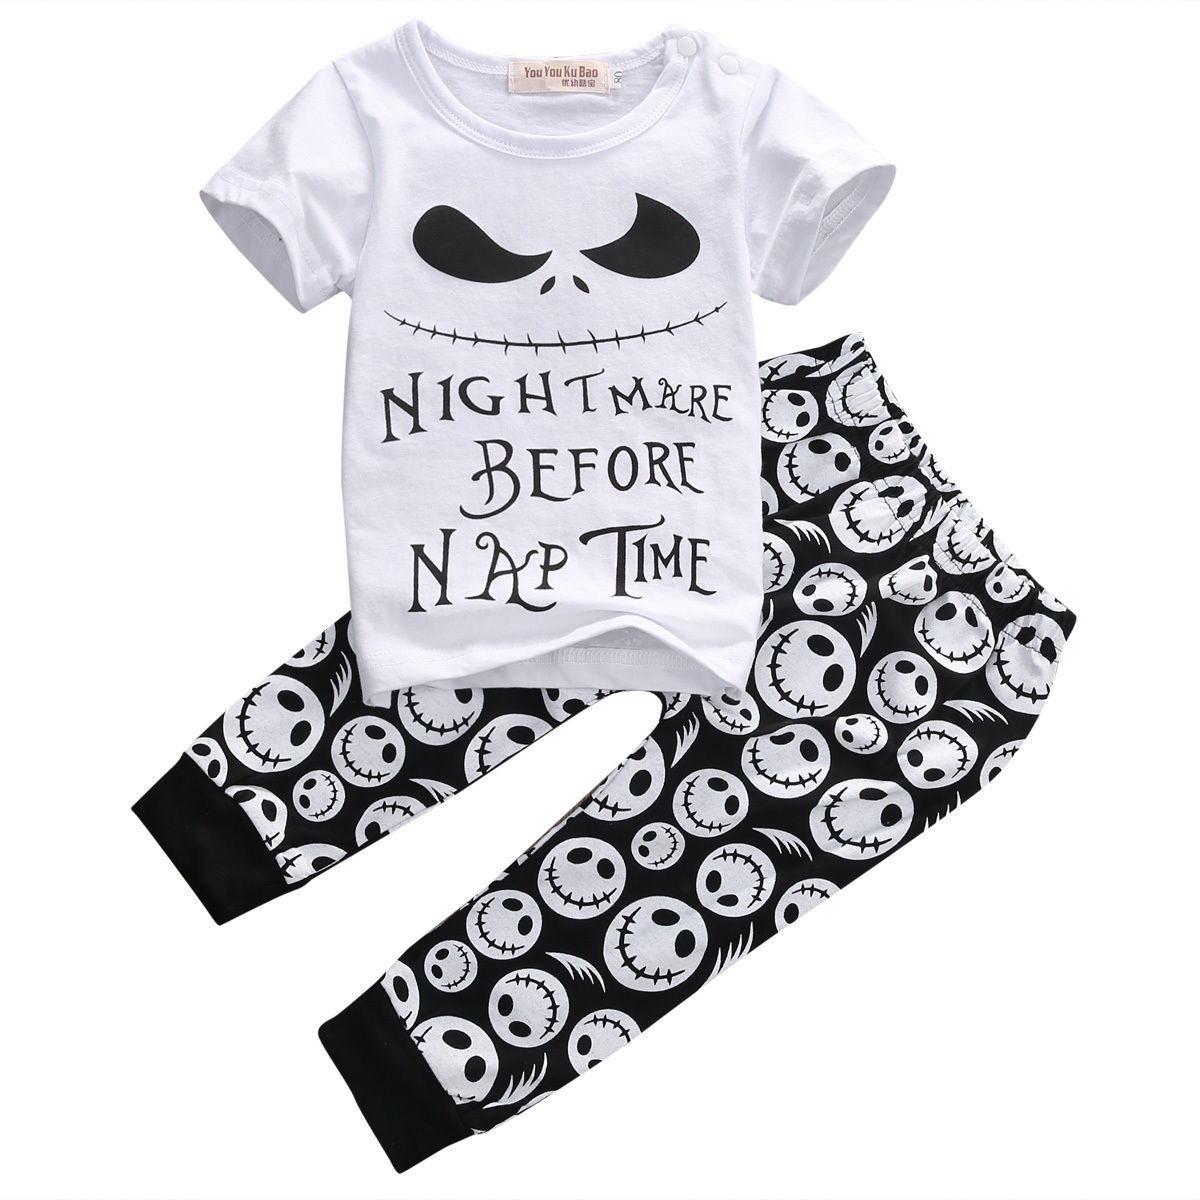 2PCS Monster Toddler Newborn Baby Boys Short Sleeve Letter T-shirt Tops+Pants Casual Outfits Set Clothes